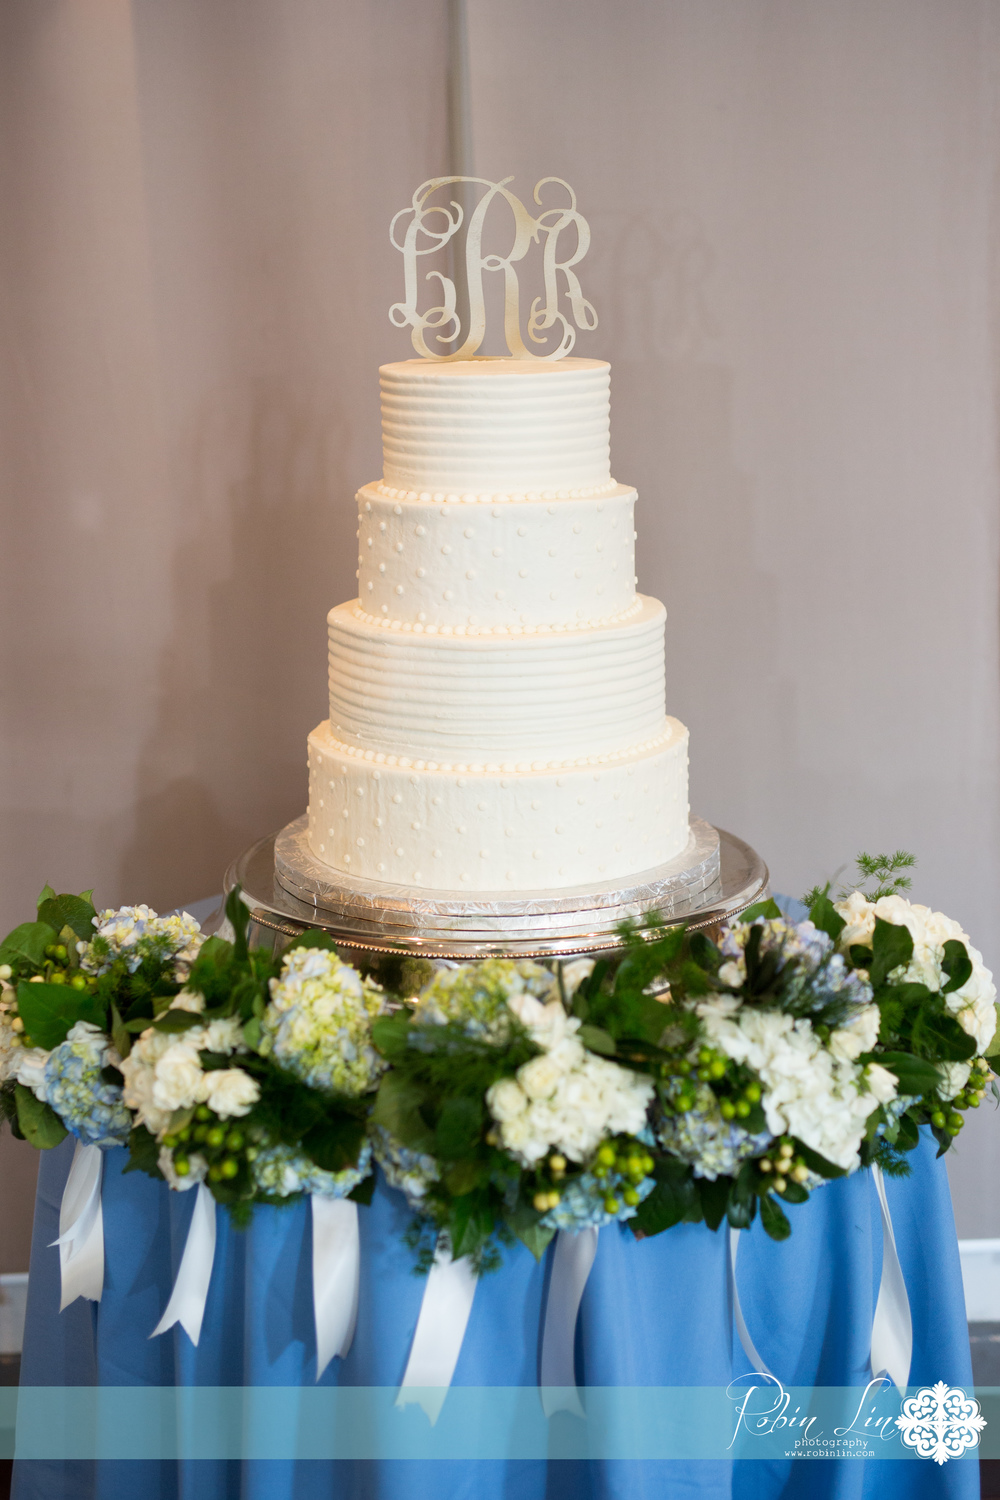 Monogram topped wedding cake | Edible Art Bakery of Raleigh